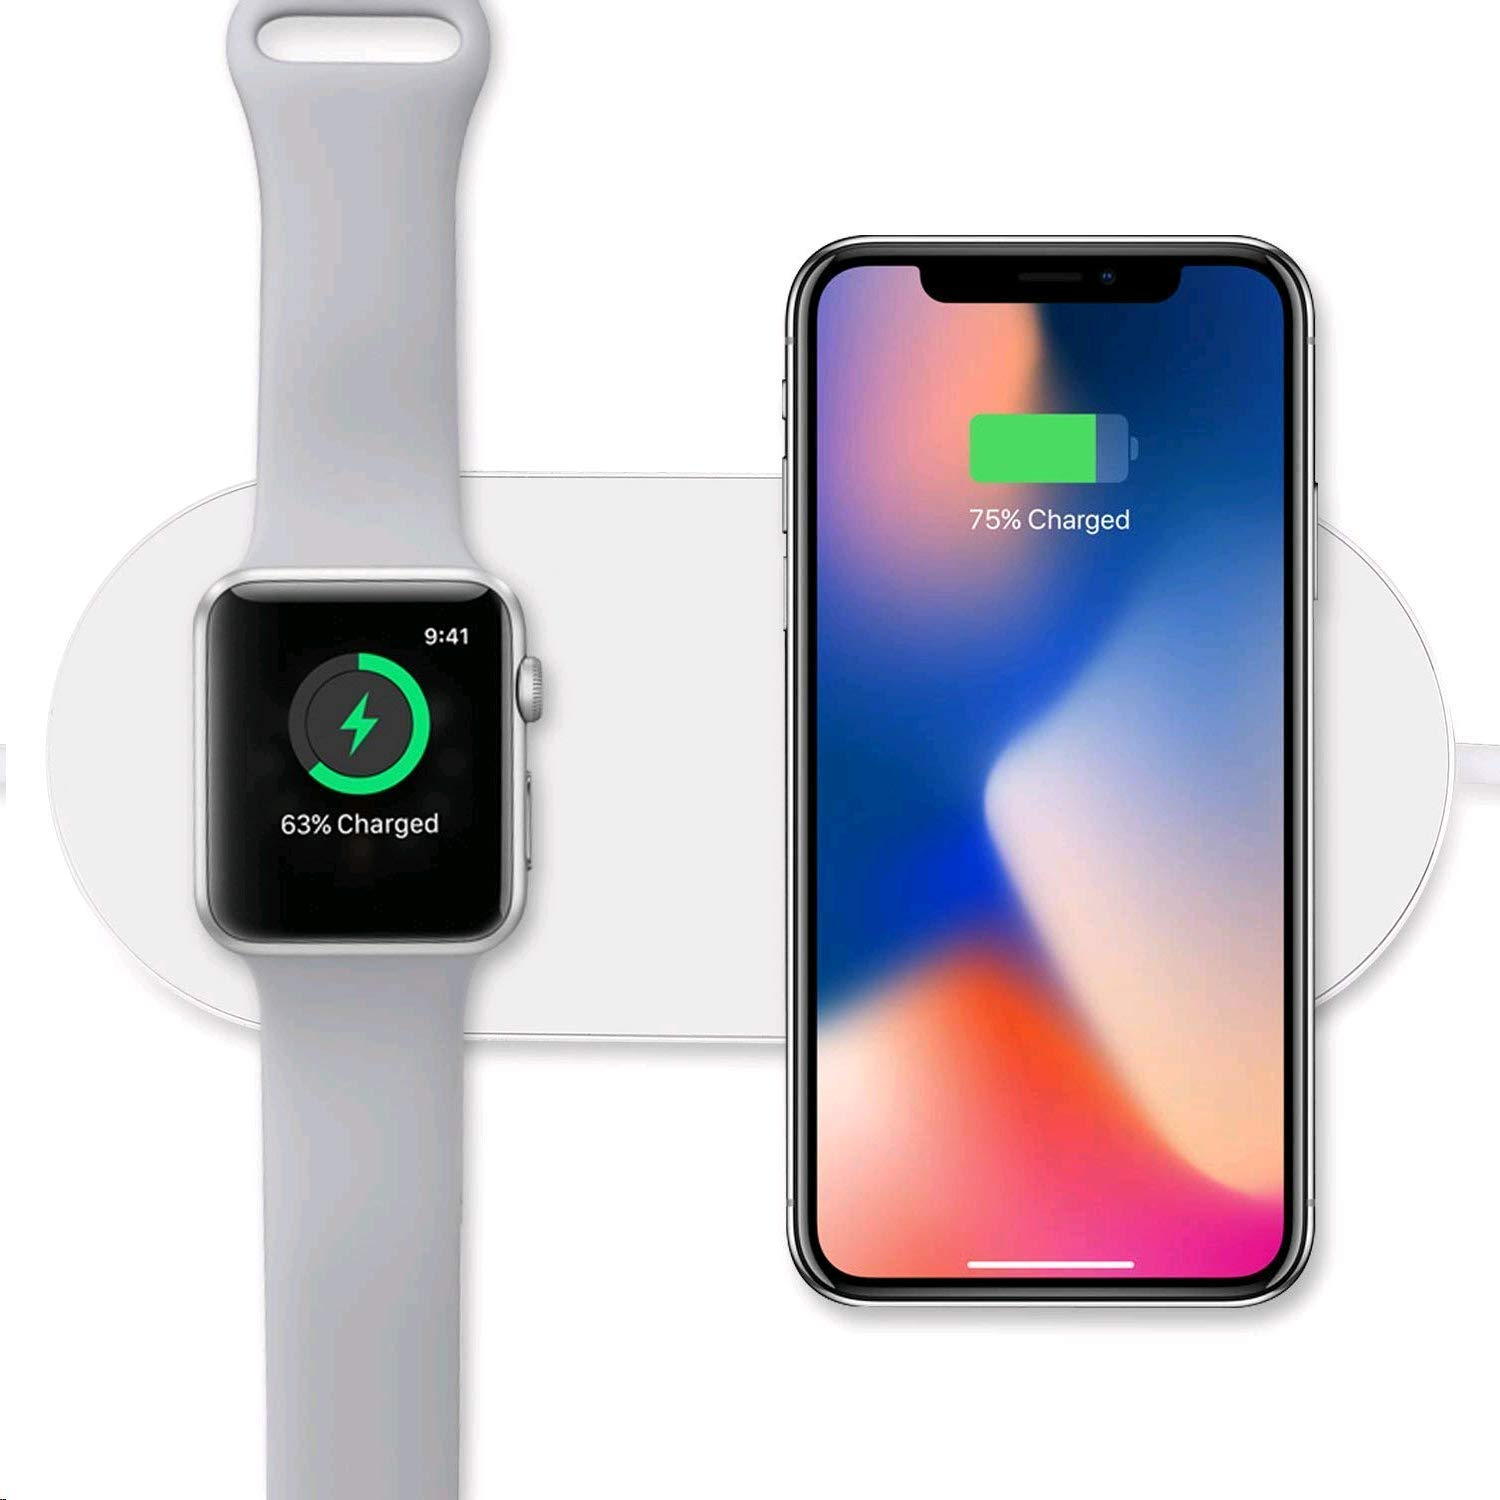 cheap for discount 7d60a 14445 Wireless Inductive Charger for iPhone 8/8 Plus/X/XR/XS and Apple Watch  1/2/3 Compatible Wireless Chargers, Fast inductive Charger for Samsung  Galaxy ...